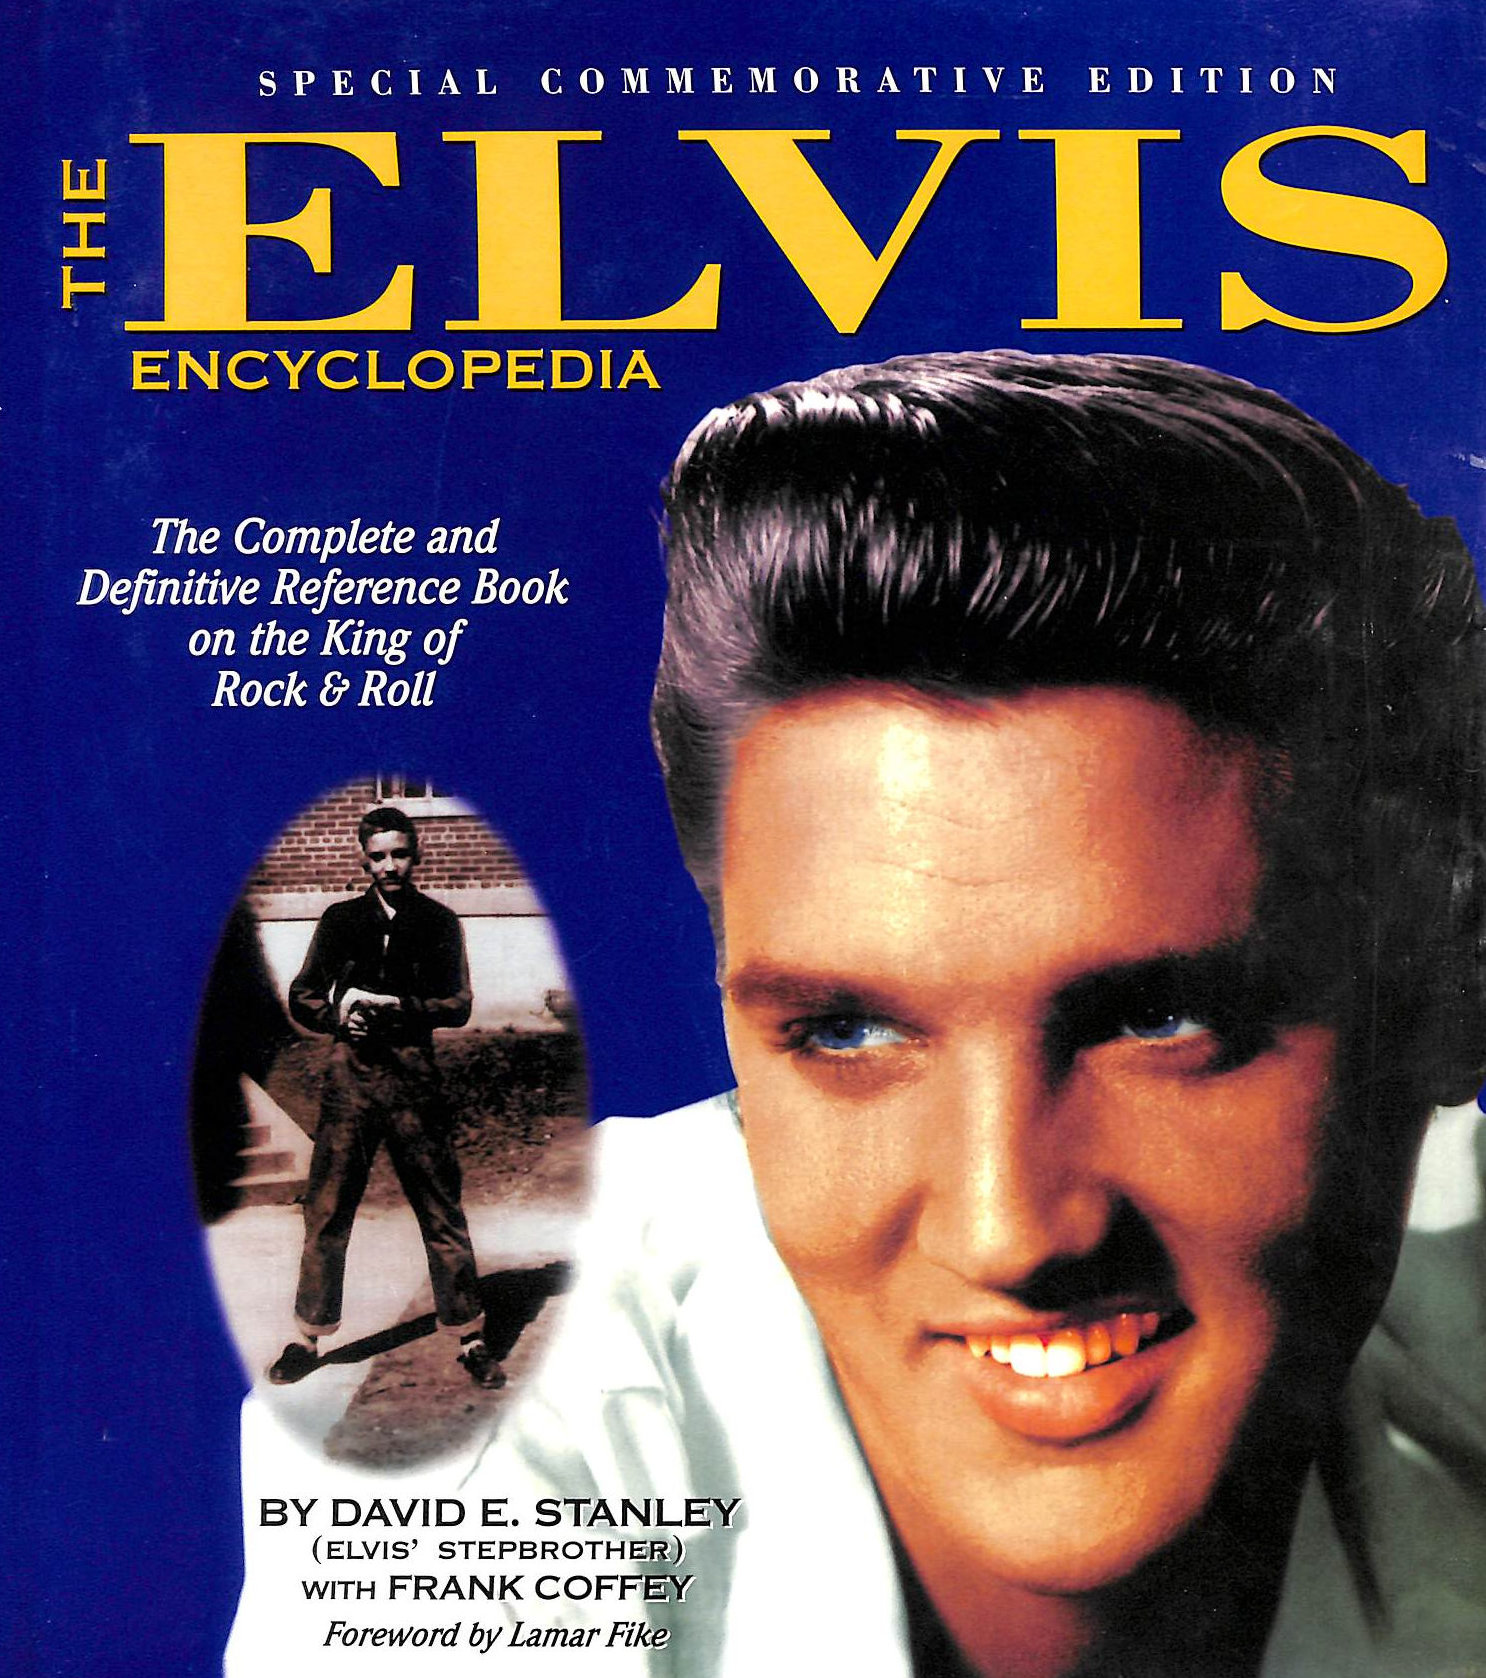 Image for The Elvis Encyclopedia: The Complete And Definitive Reference Book On The King Of Rock & Roll